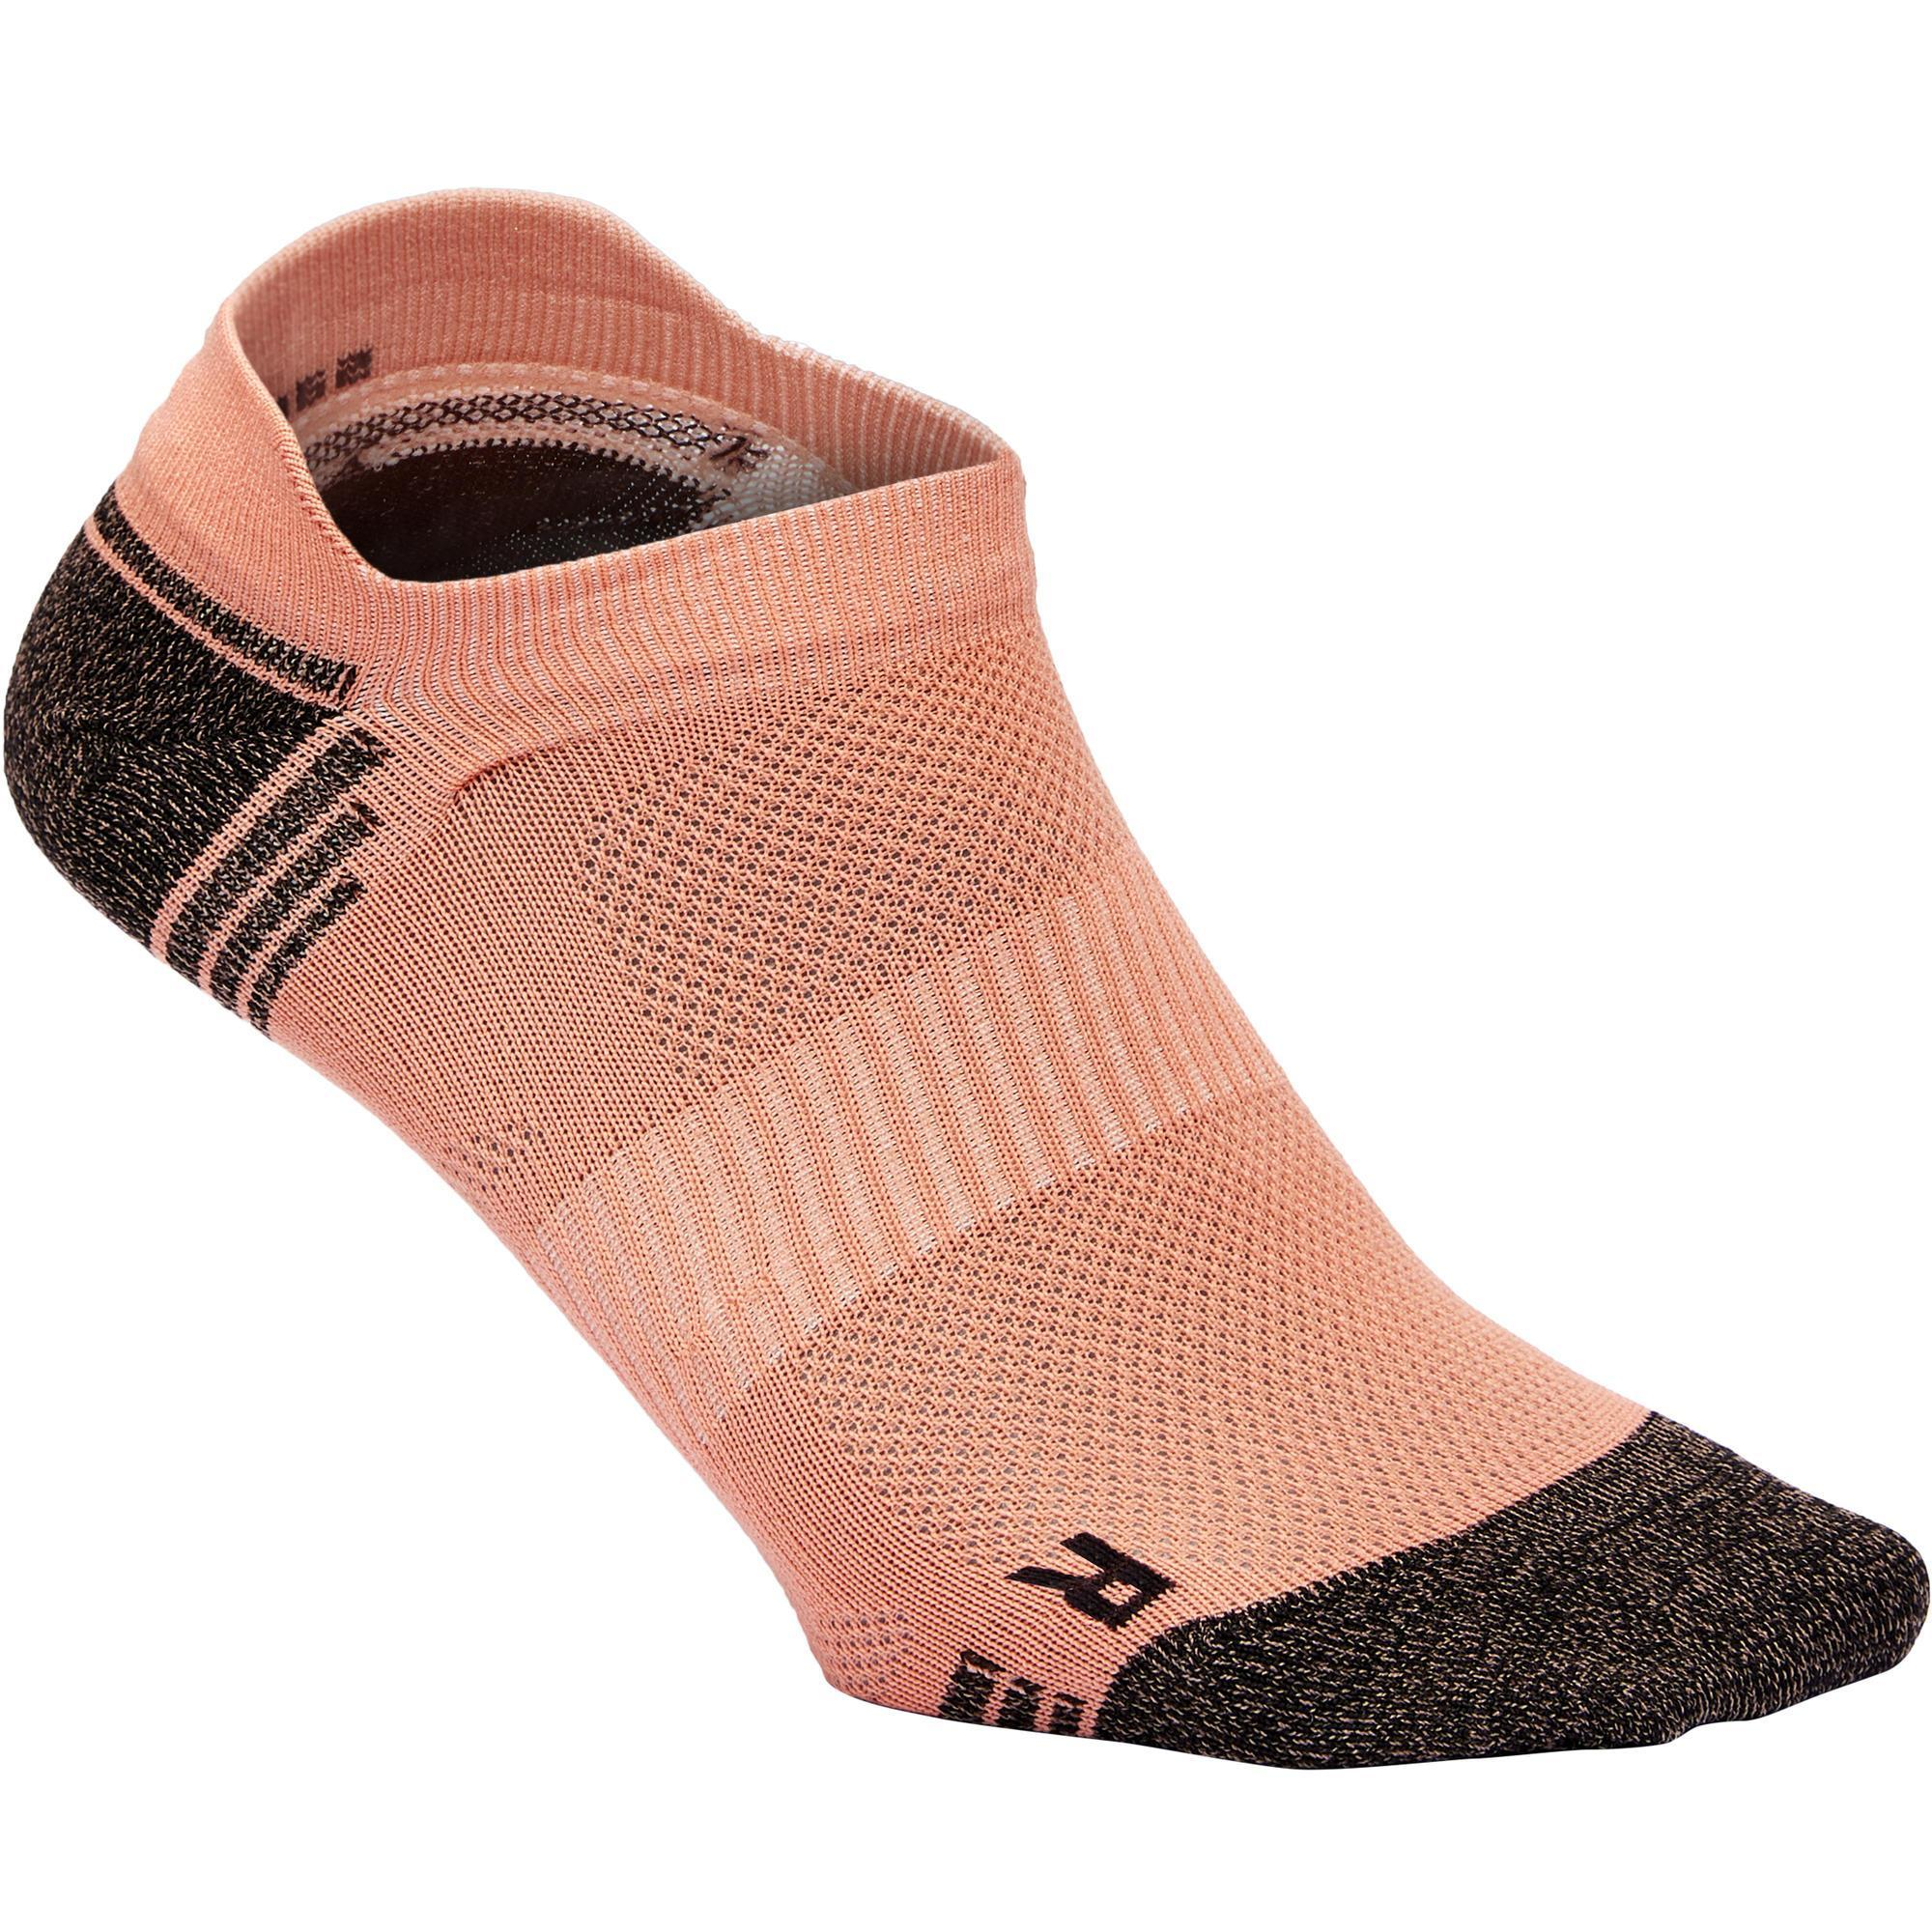 Chaussettes marche sportive ws 500 low corail newfeel